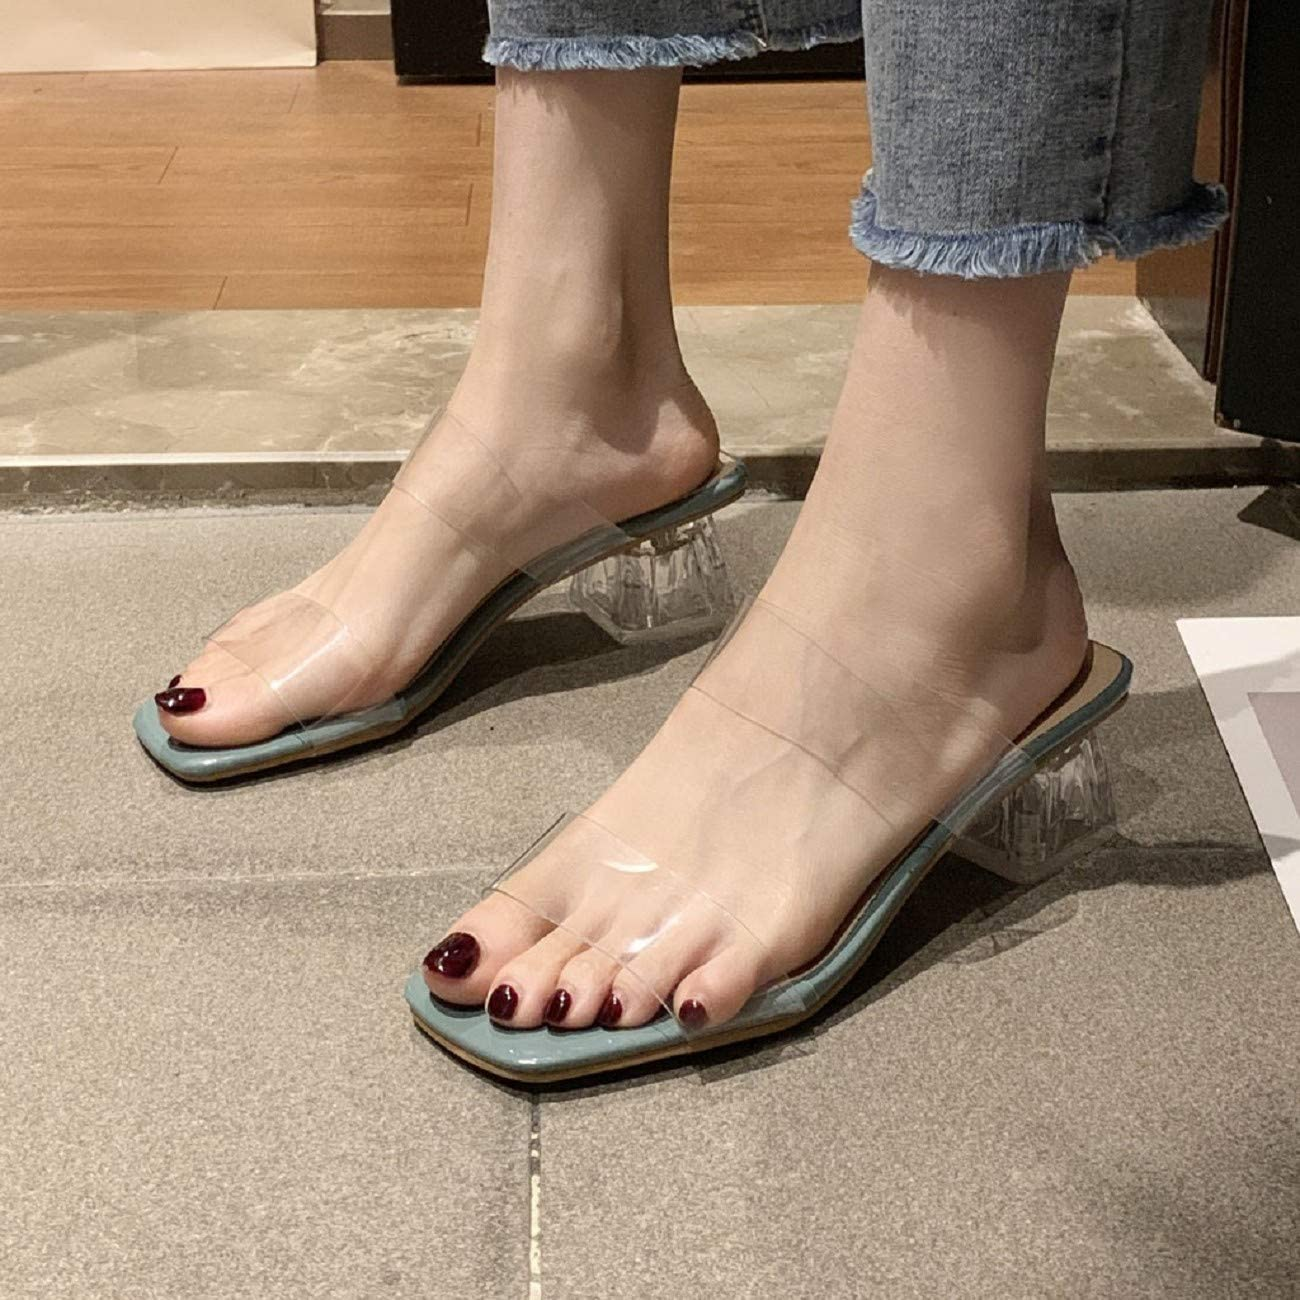 Tsmile Womens Transparent Block Heel Summer Fashion Simple Style High Heel Solid Color Casual Slippers Flip Flop